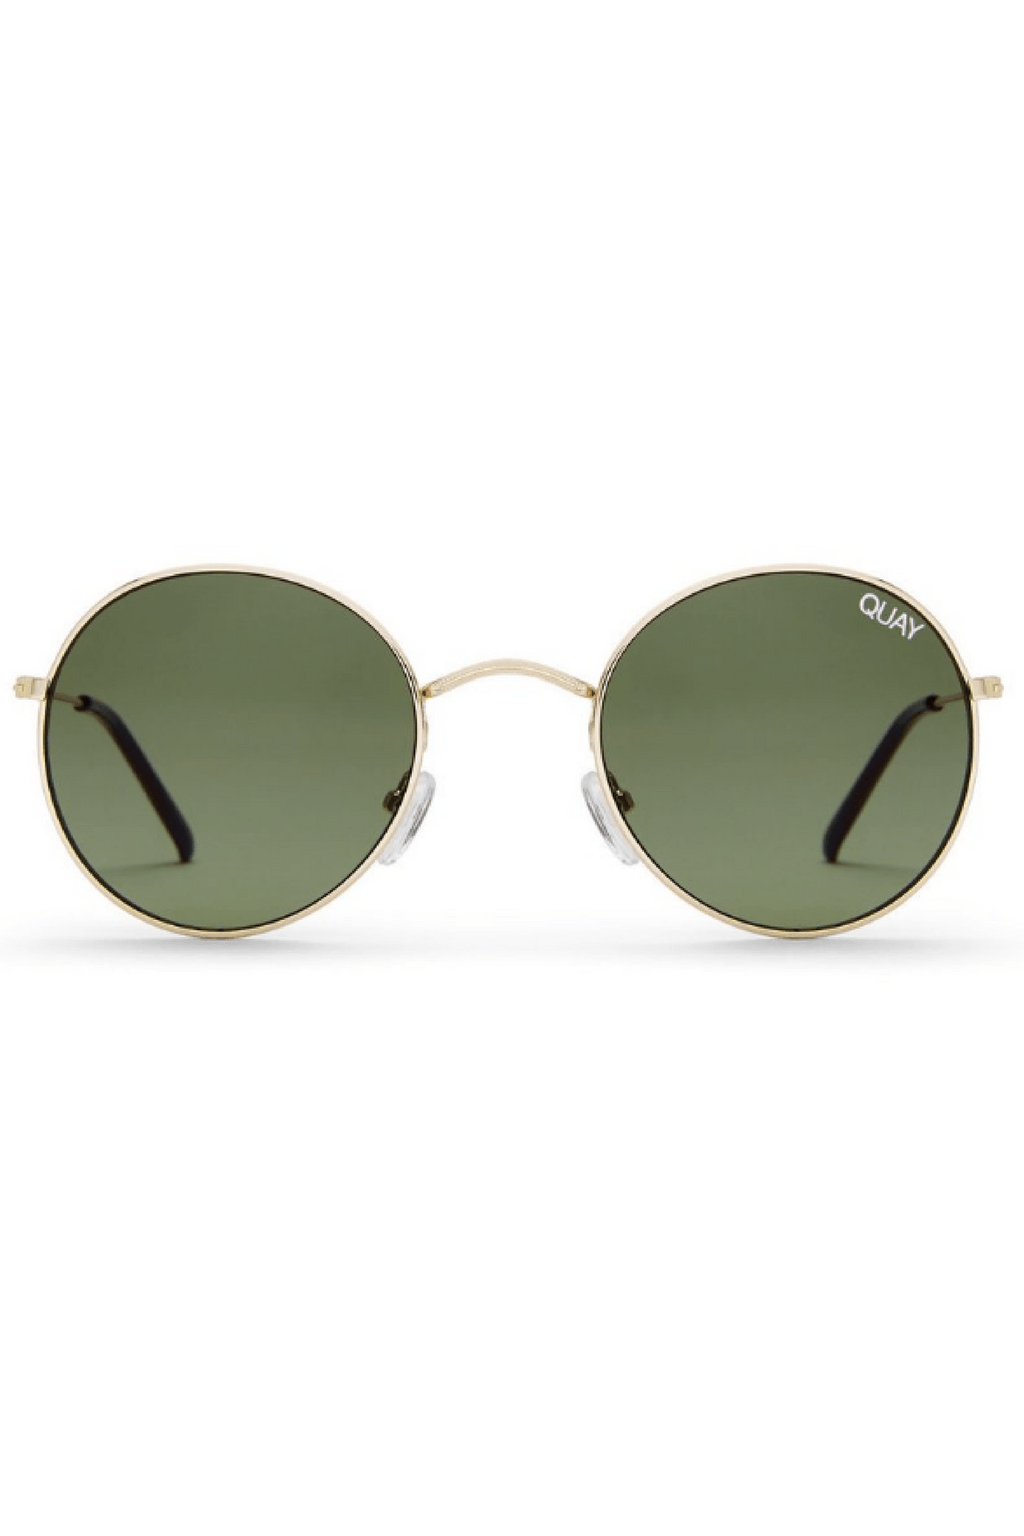 Mod Star Sunglasses in Gold/Green